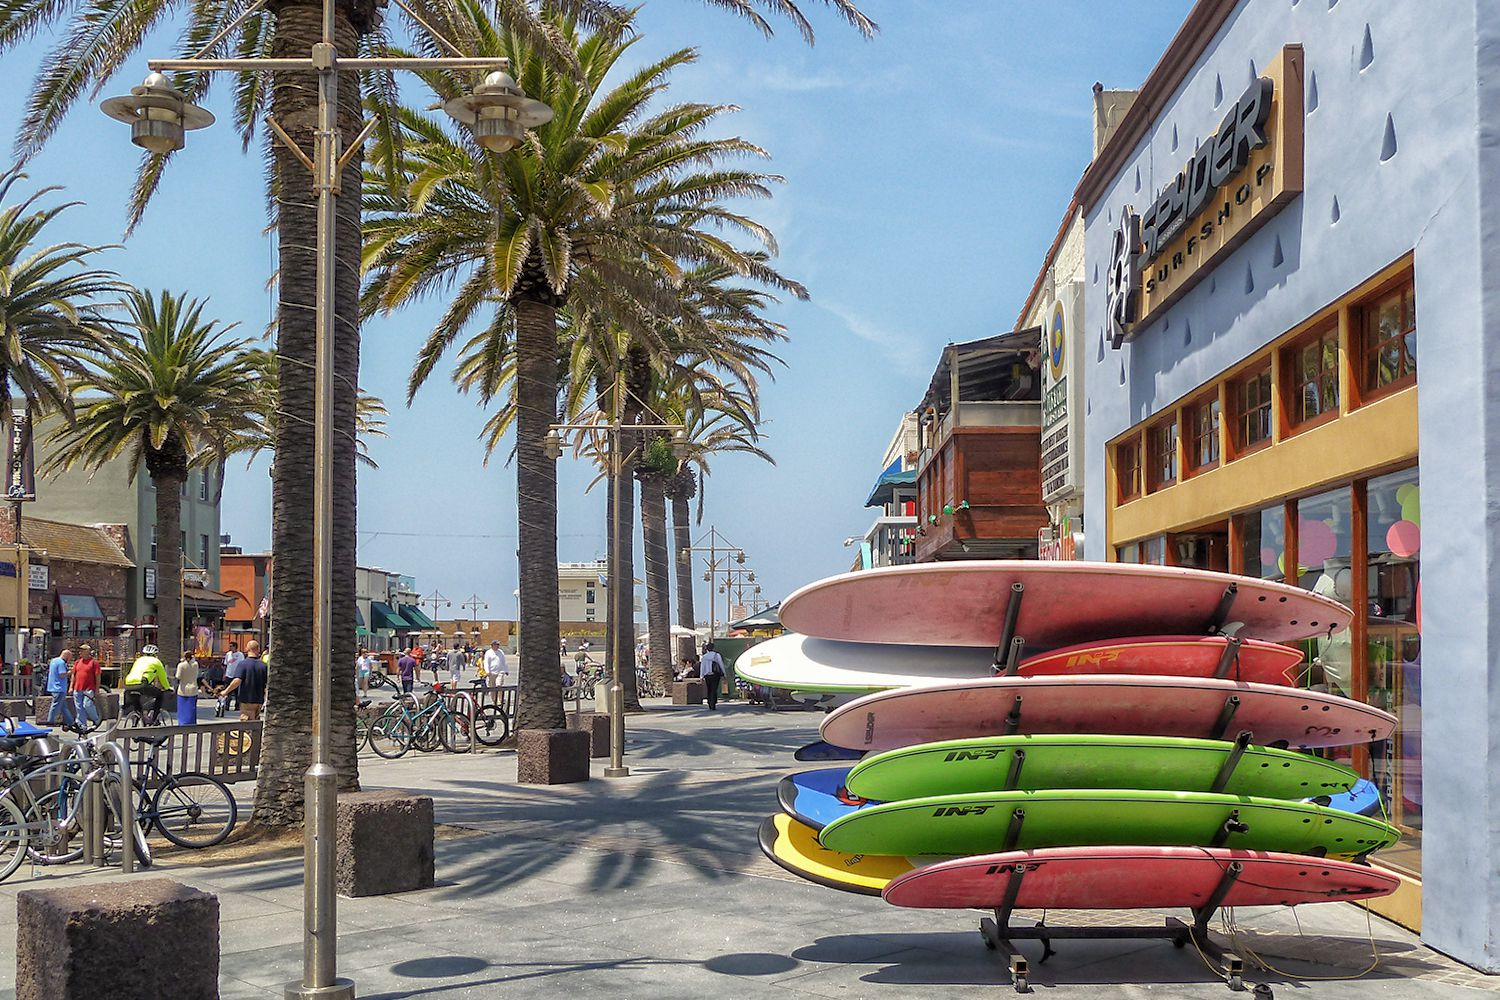 Things To Do In Hermosa Beach California